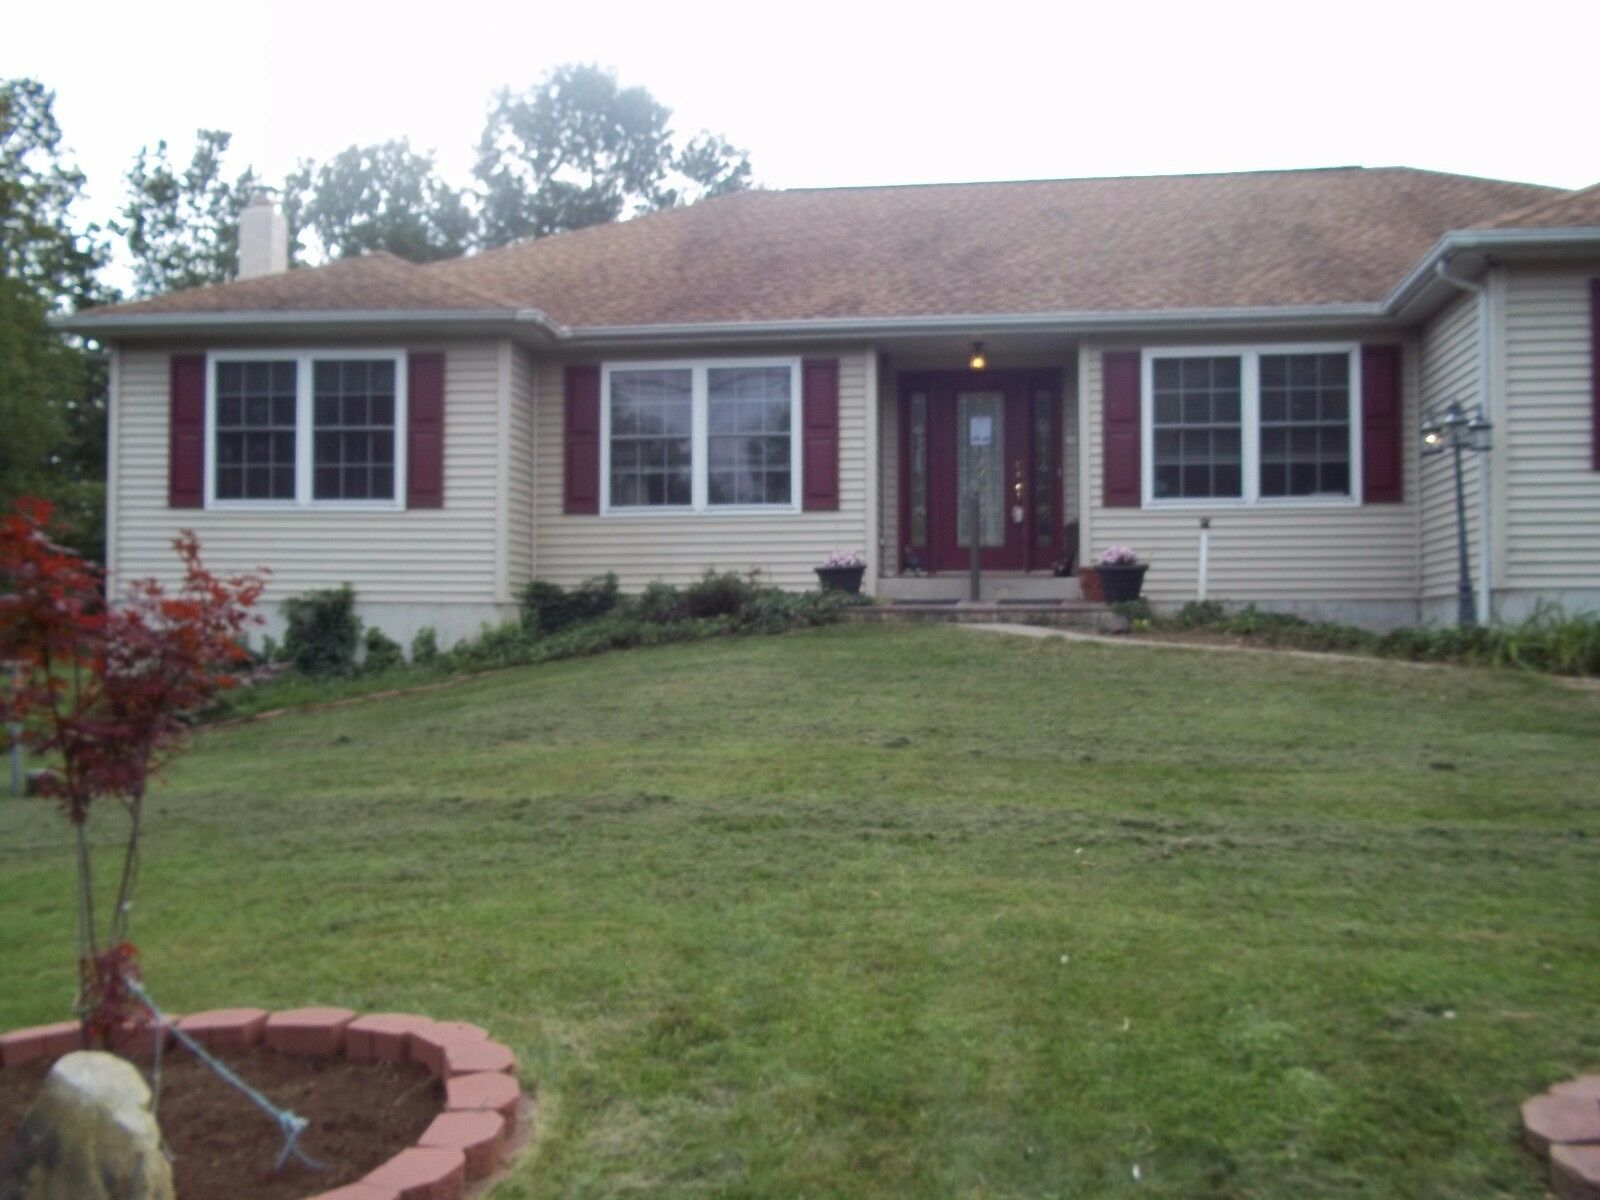 Ranch Style Home For Sale By Owner Cad 228